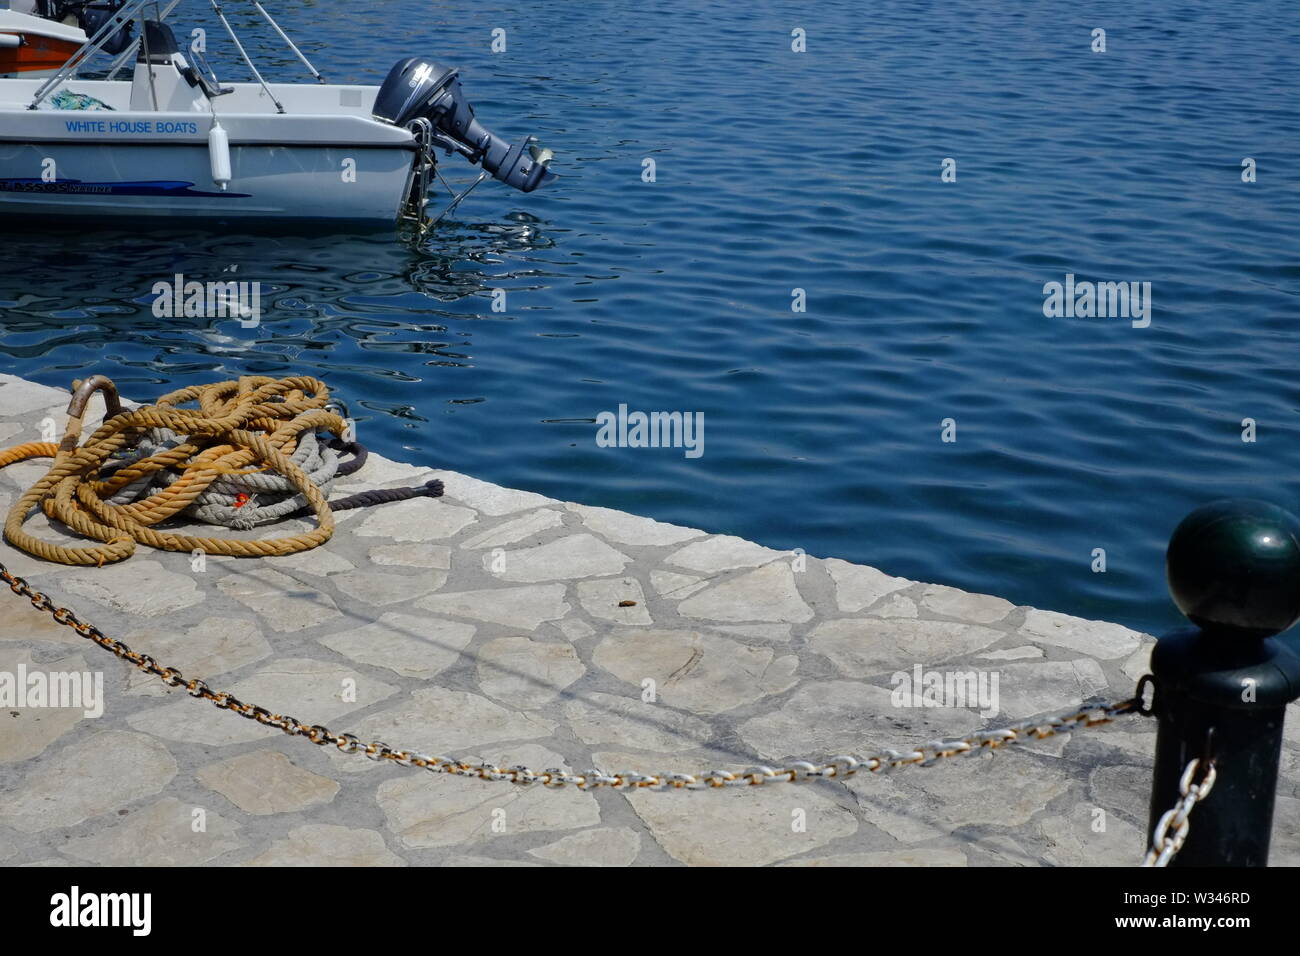 Corfu Kassiopi this photograph was taken at the small picturesqe harbour. this harbour is the focal point of this scenic village. - Stock Image